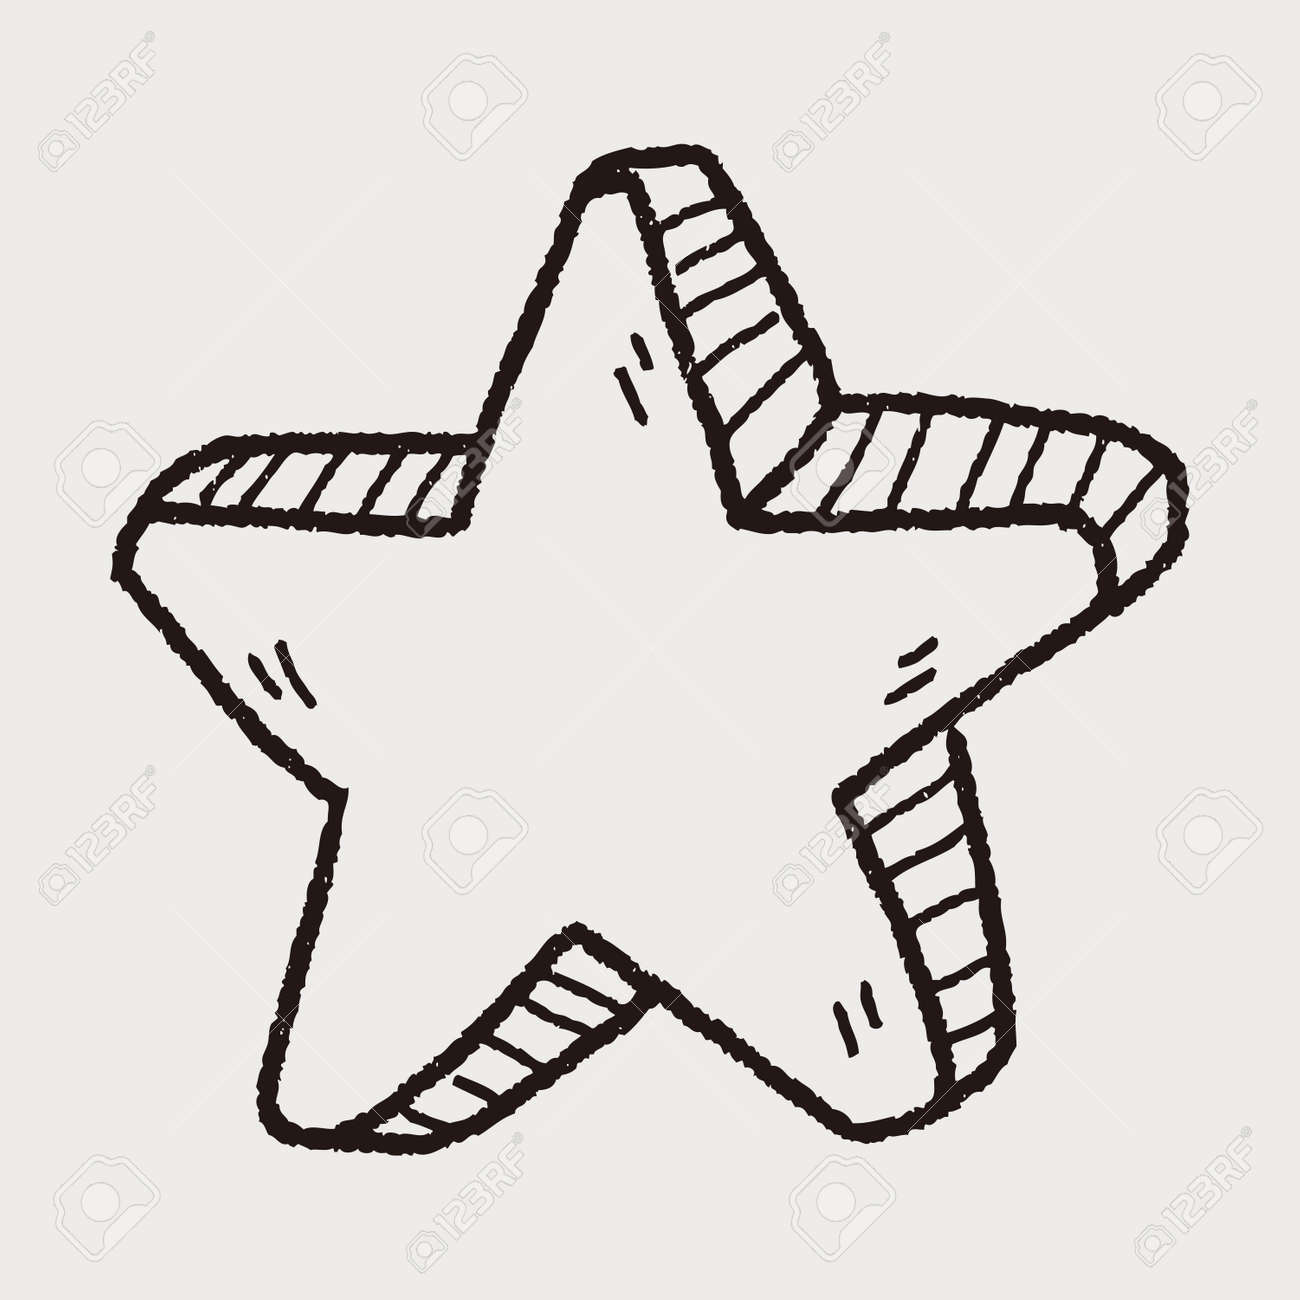 Star Doodle Royalty Free Cliparts Vectors And Stock Illustration Image 40812314 Check out our star doodles selection for the very best in unique or custom, handmade pieces from our papercraft shops. star doodle